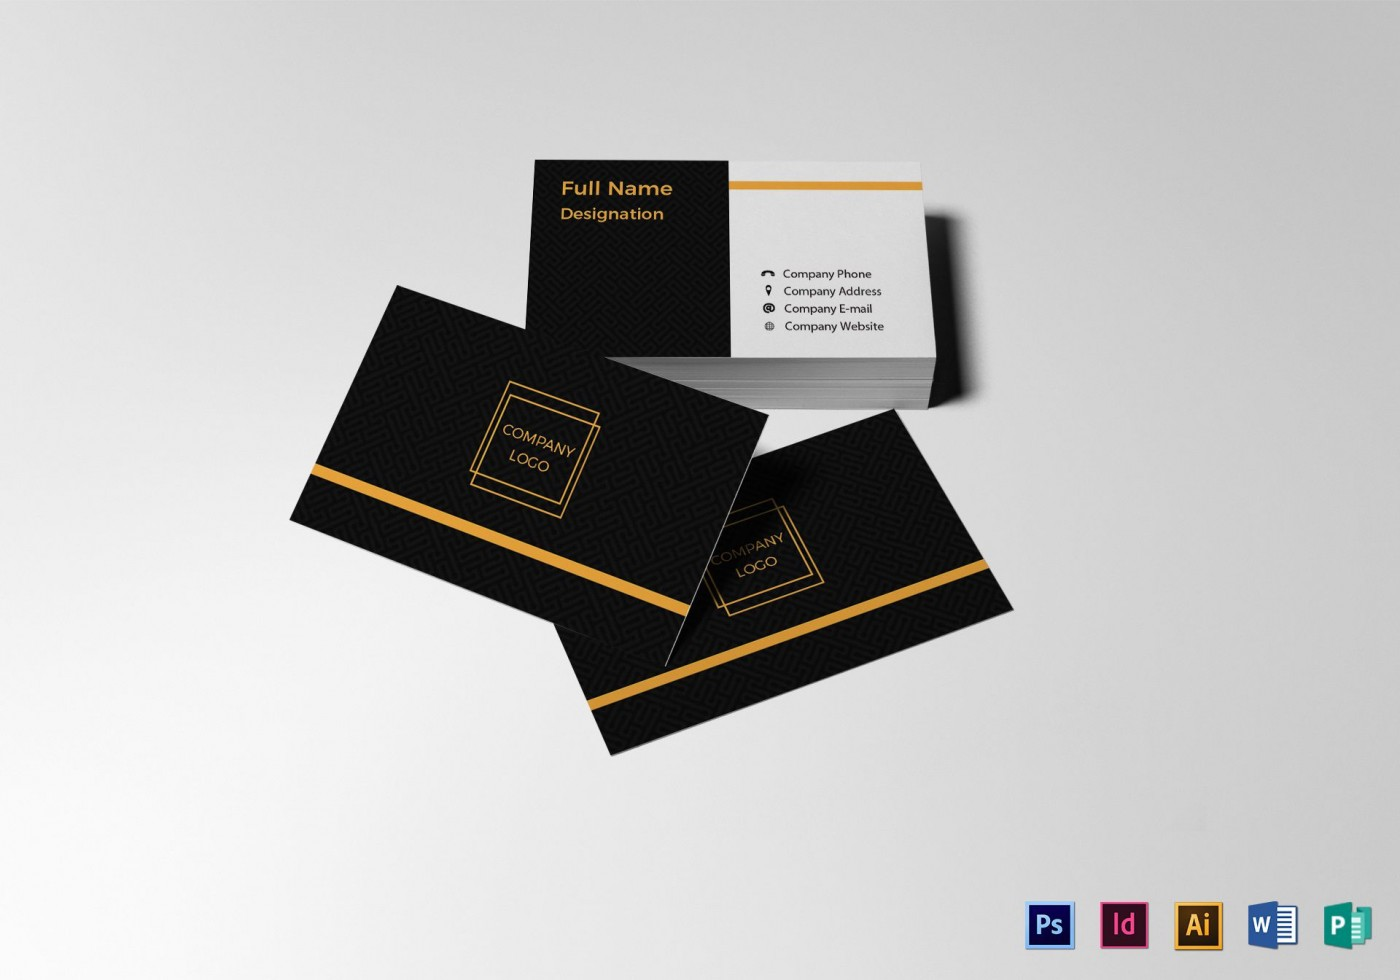 004 Simple Blank Busines Card Template Photoshop Inspiration  Free Download Psd1400